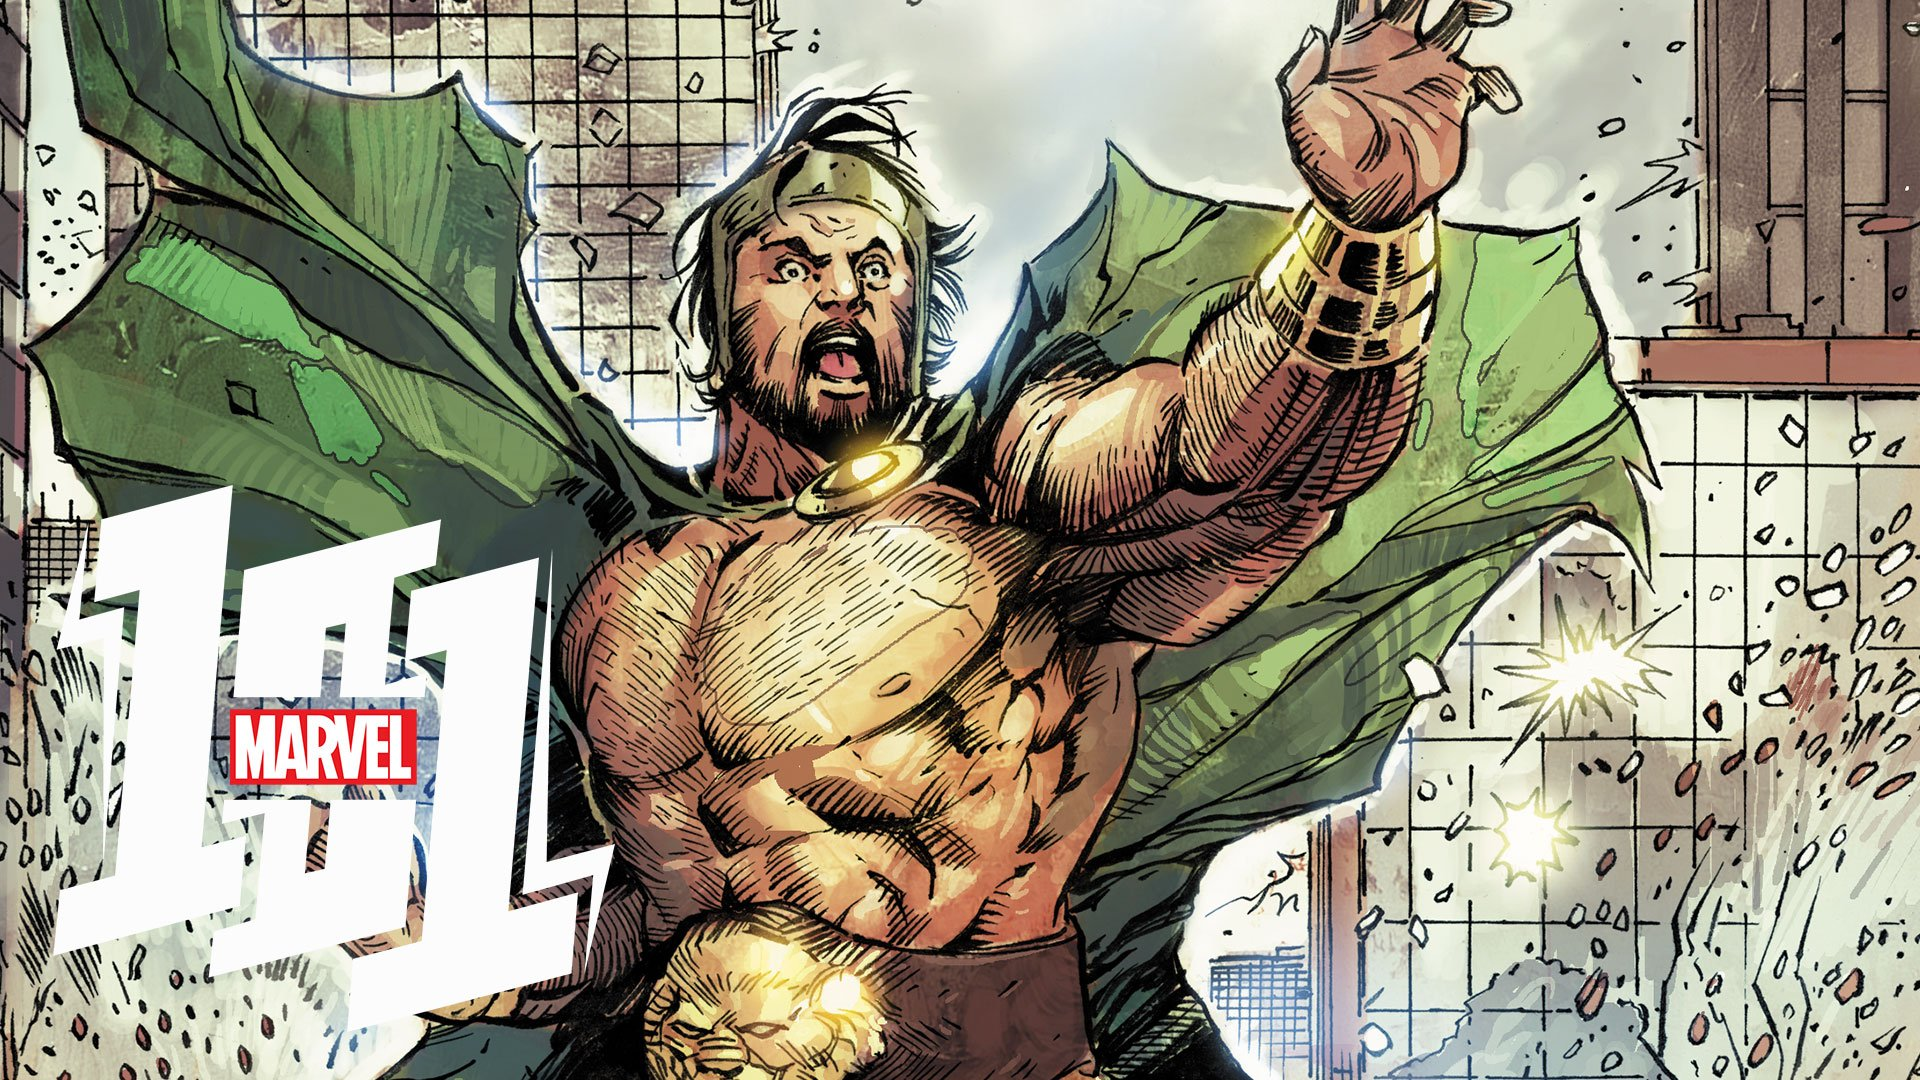 Son of Zeus, immortal Olympian, and friend of the Avengers. Learn all about Hercules in this week's #Marvel101! https://t.co/VCKe9MKwcE